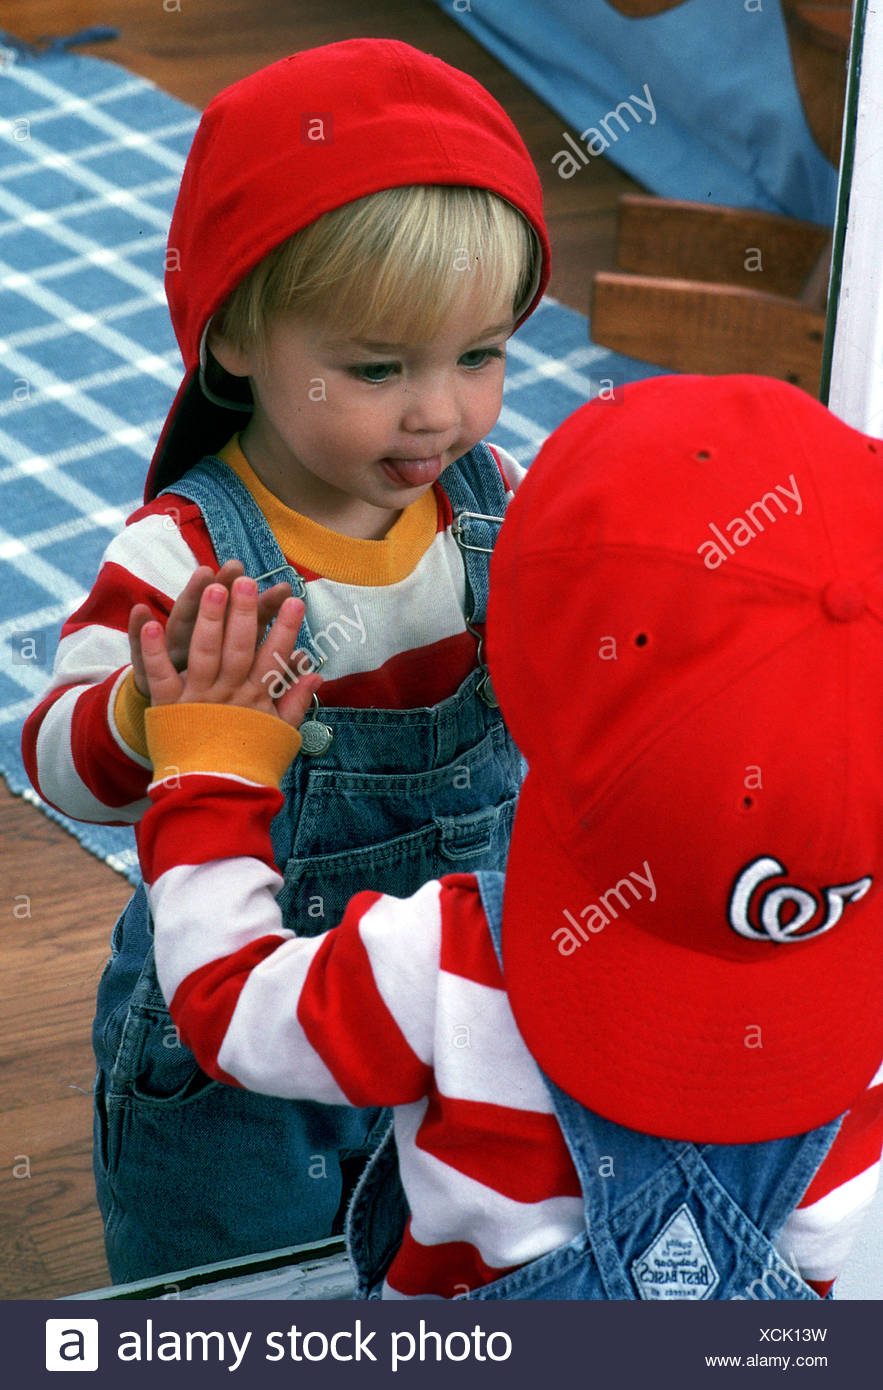 Toddler is fascinated playing with its image in a mirror - Stock Image